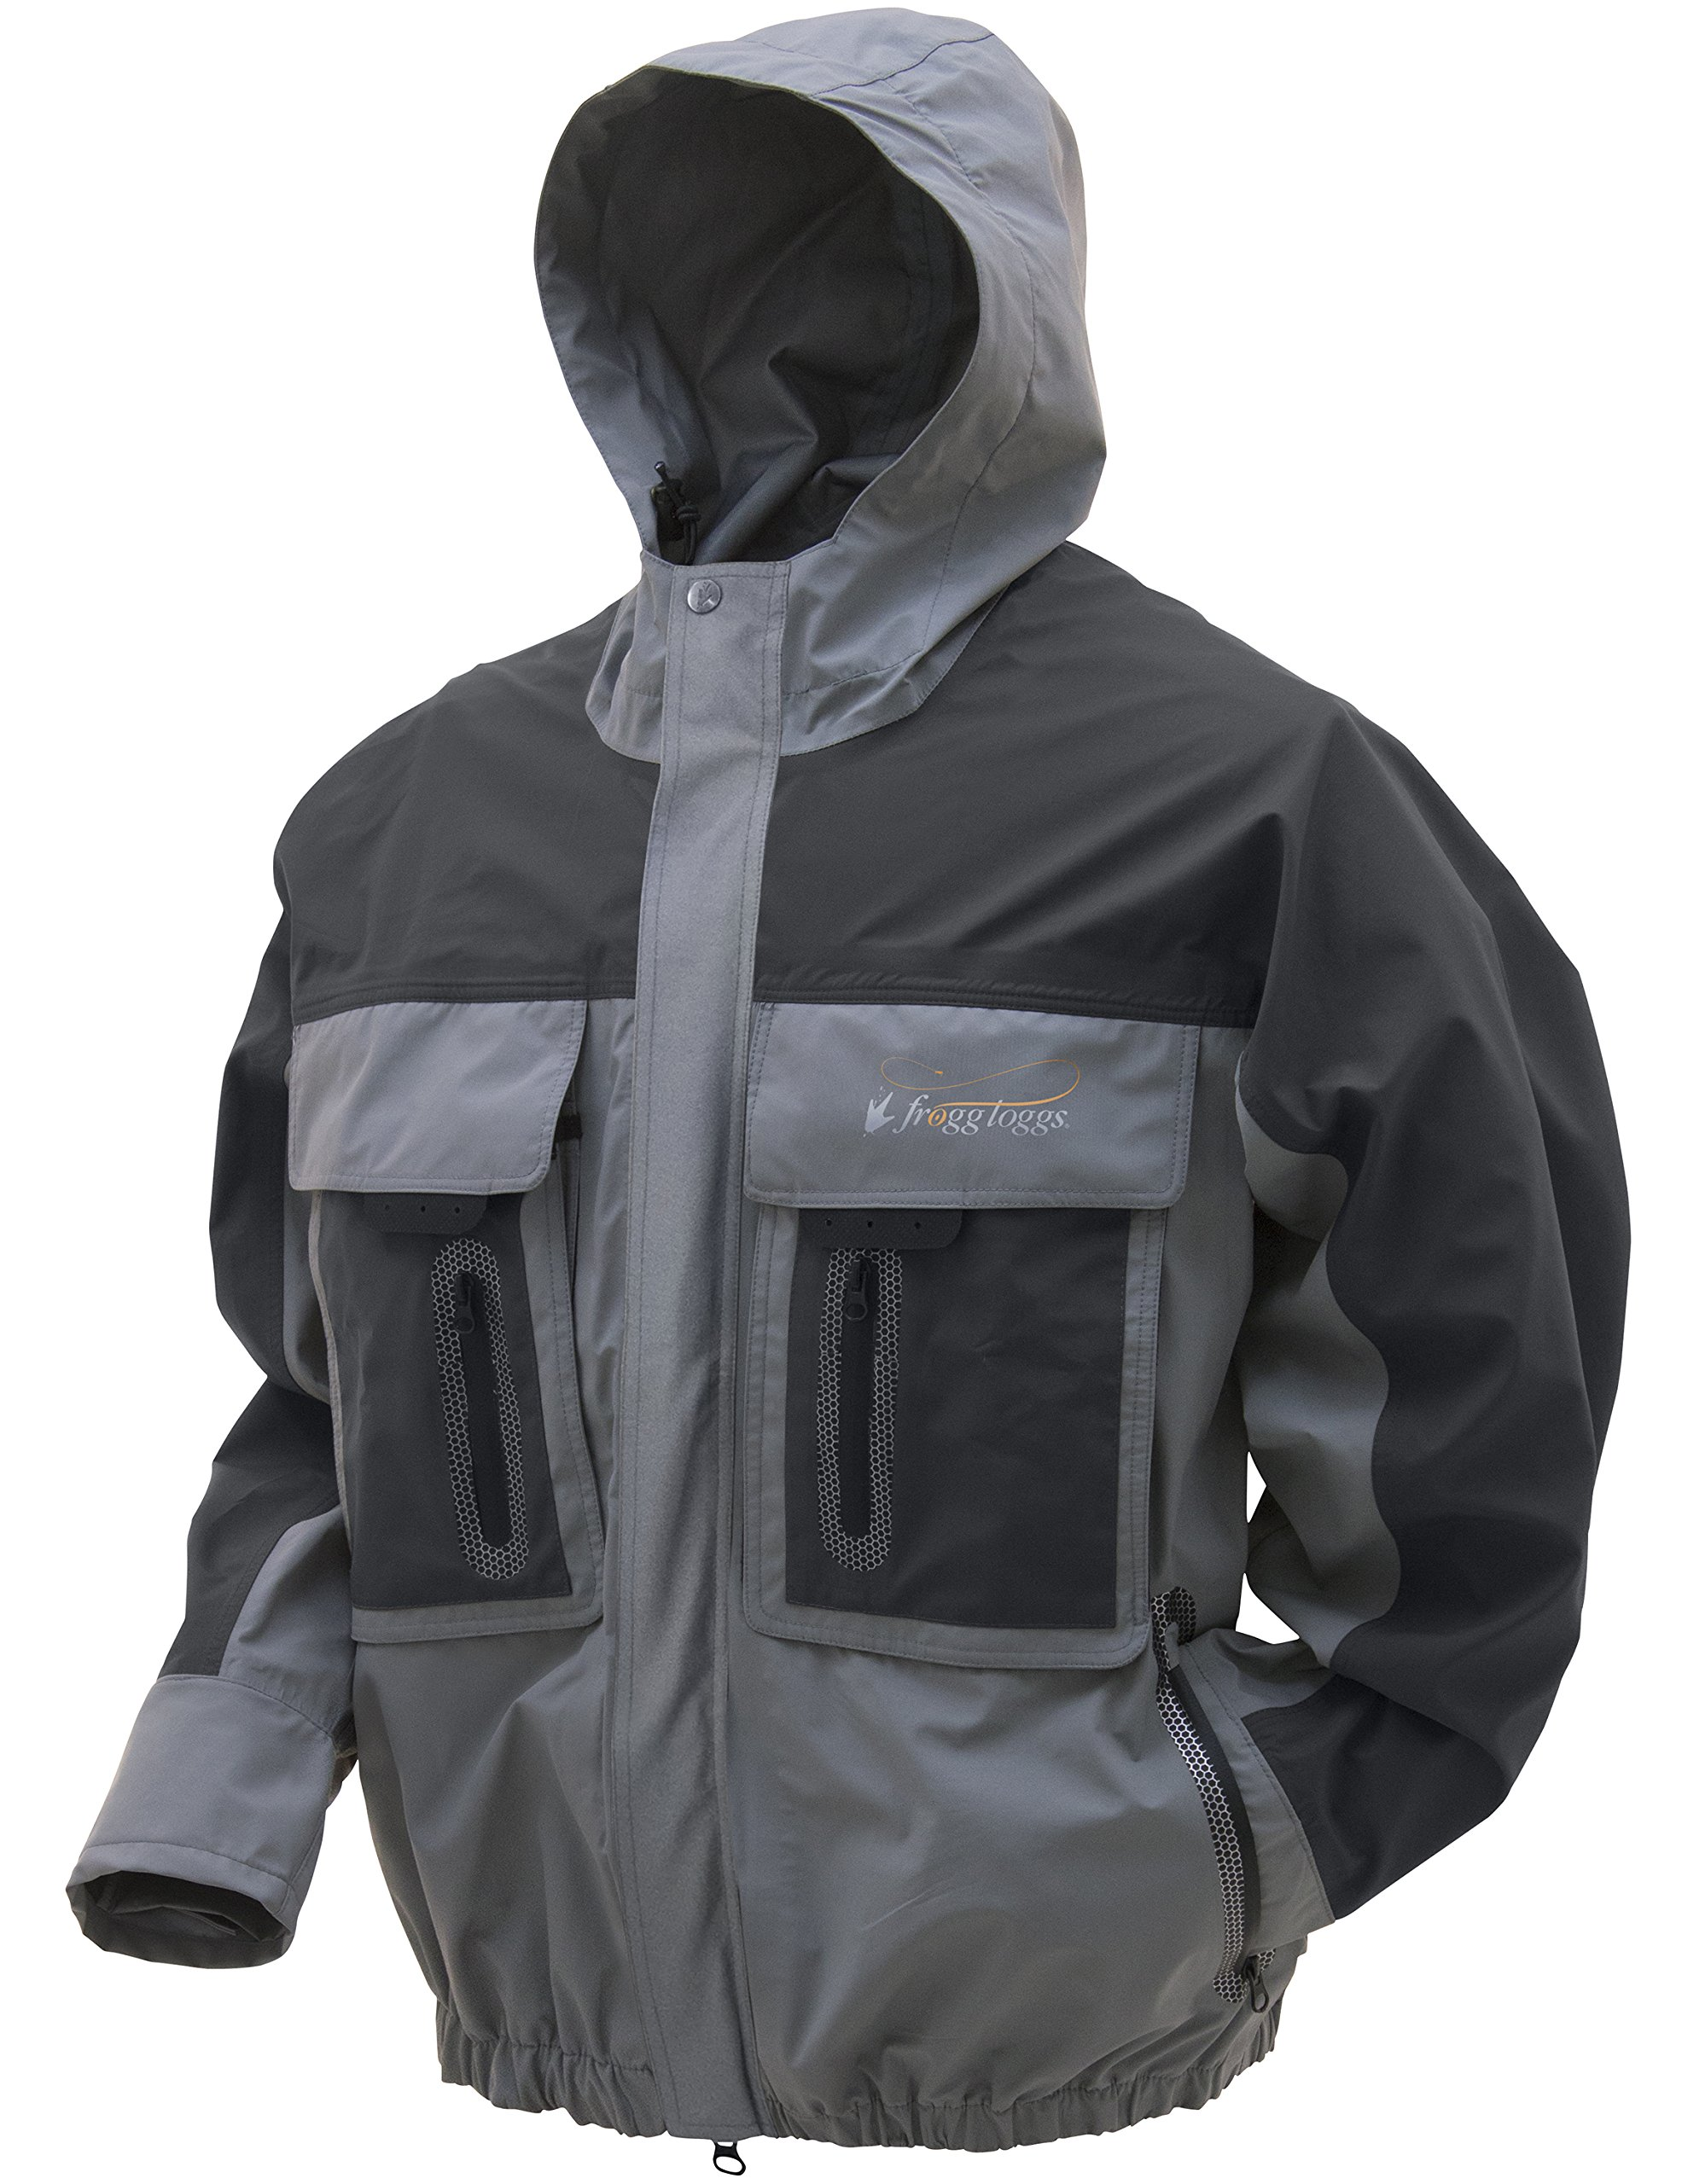 Frogg Toggs Pilot 3 Guide Rain Jacket, Slate/Gray, Size X-Large by Frogg Toggs